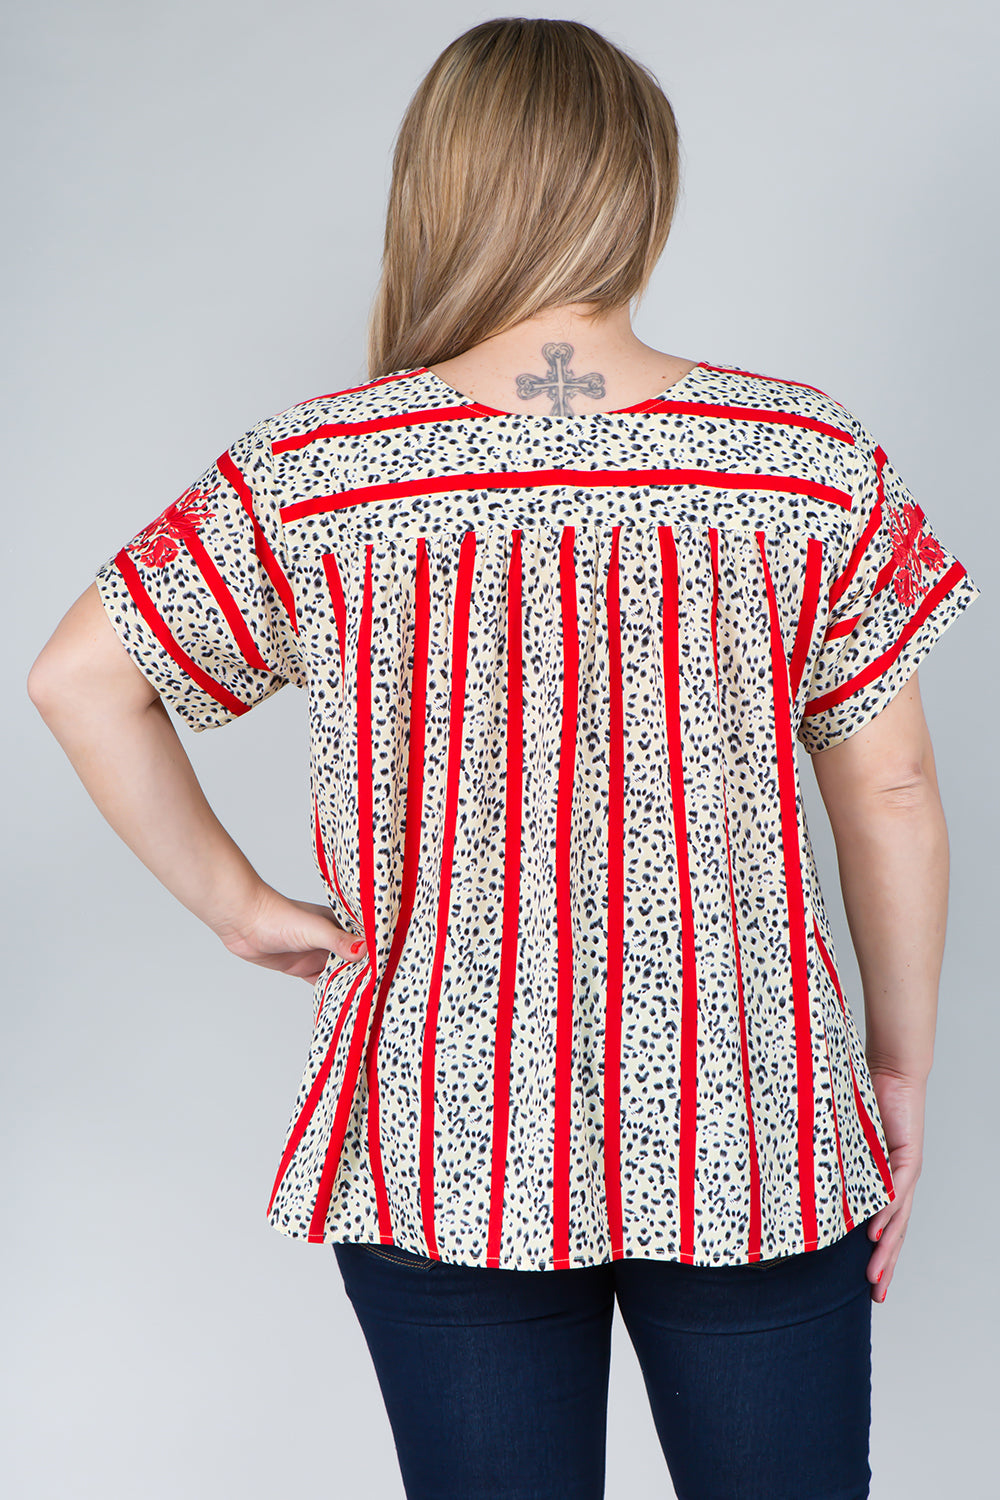 WT2819 Floral Emboridery Top - Red